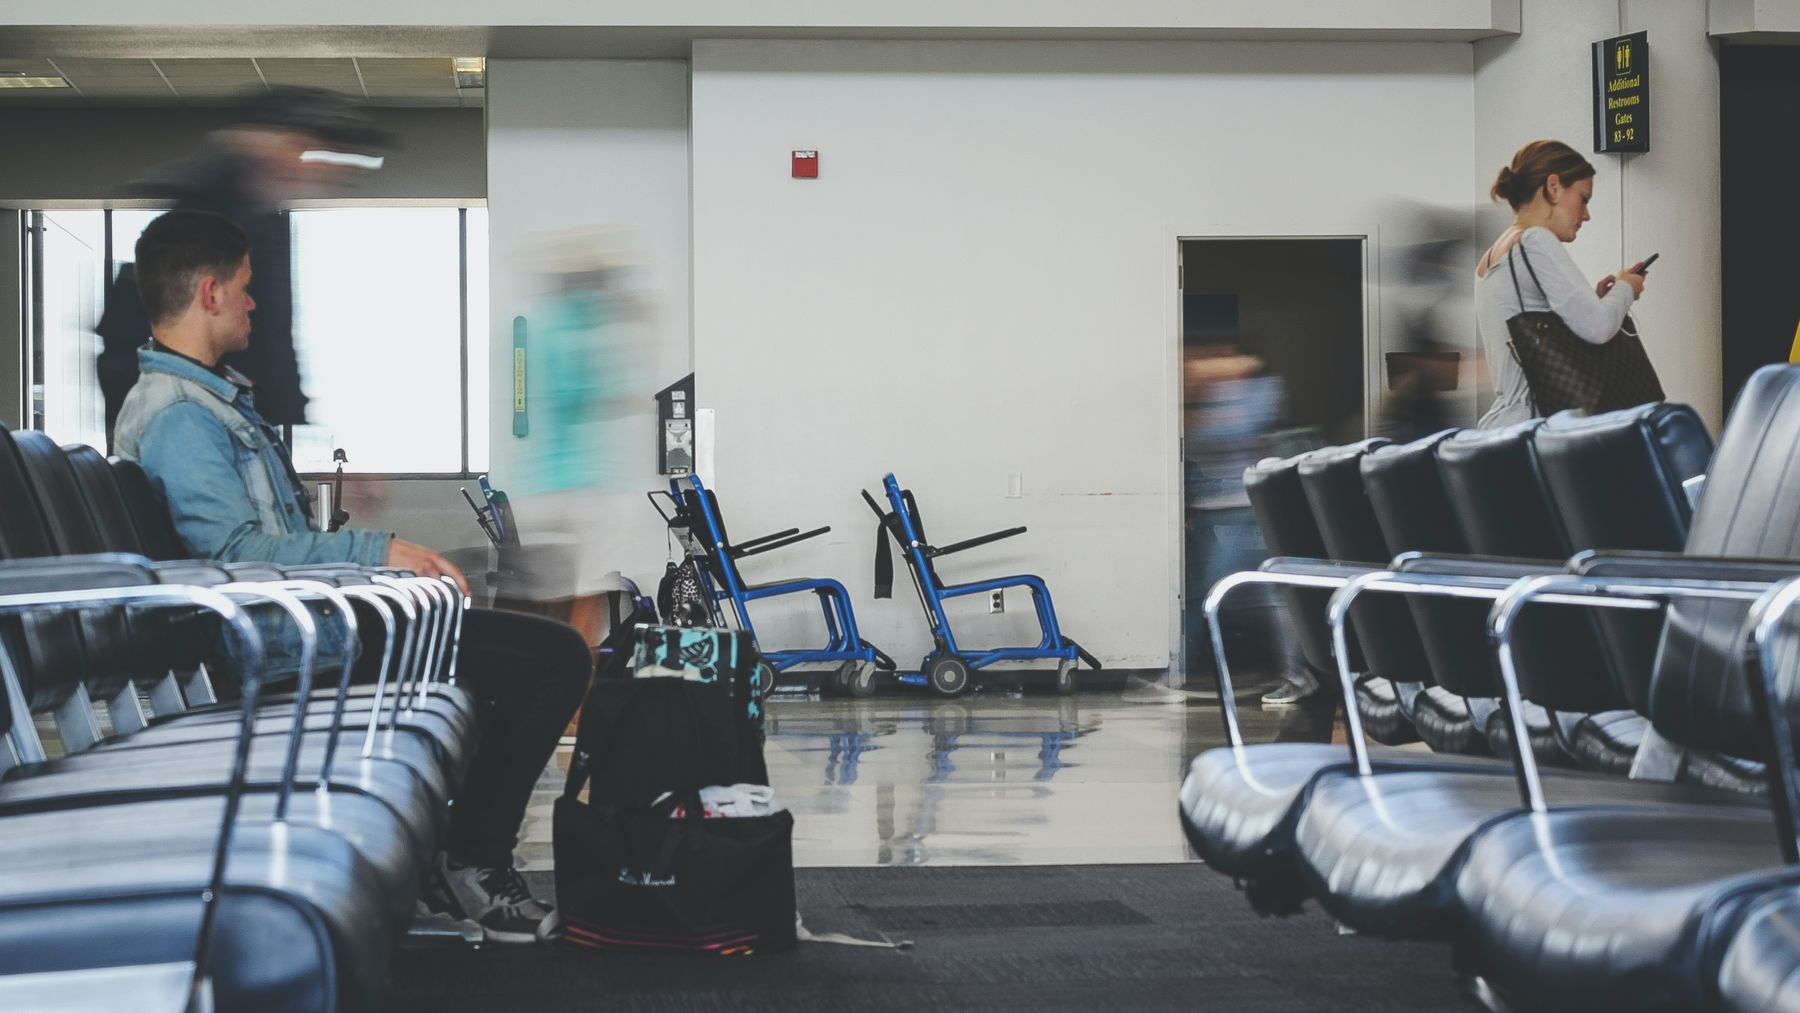 Empty seats at the airport. Flight delays and cancellations are par the course lately. Find out what your rights are with Skyscanner.